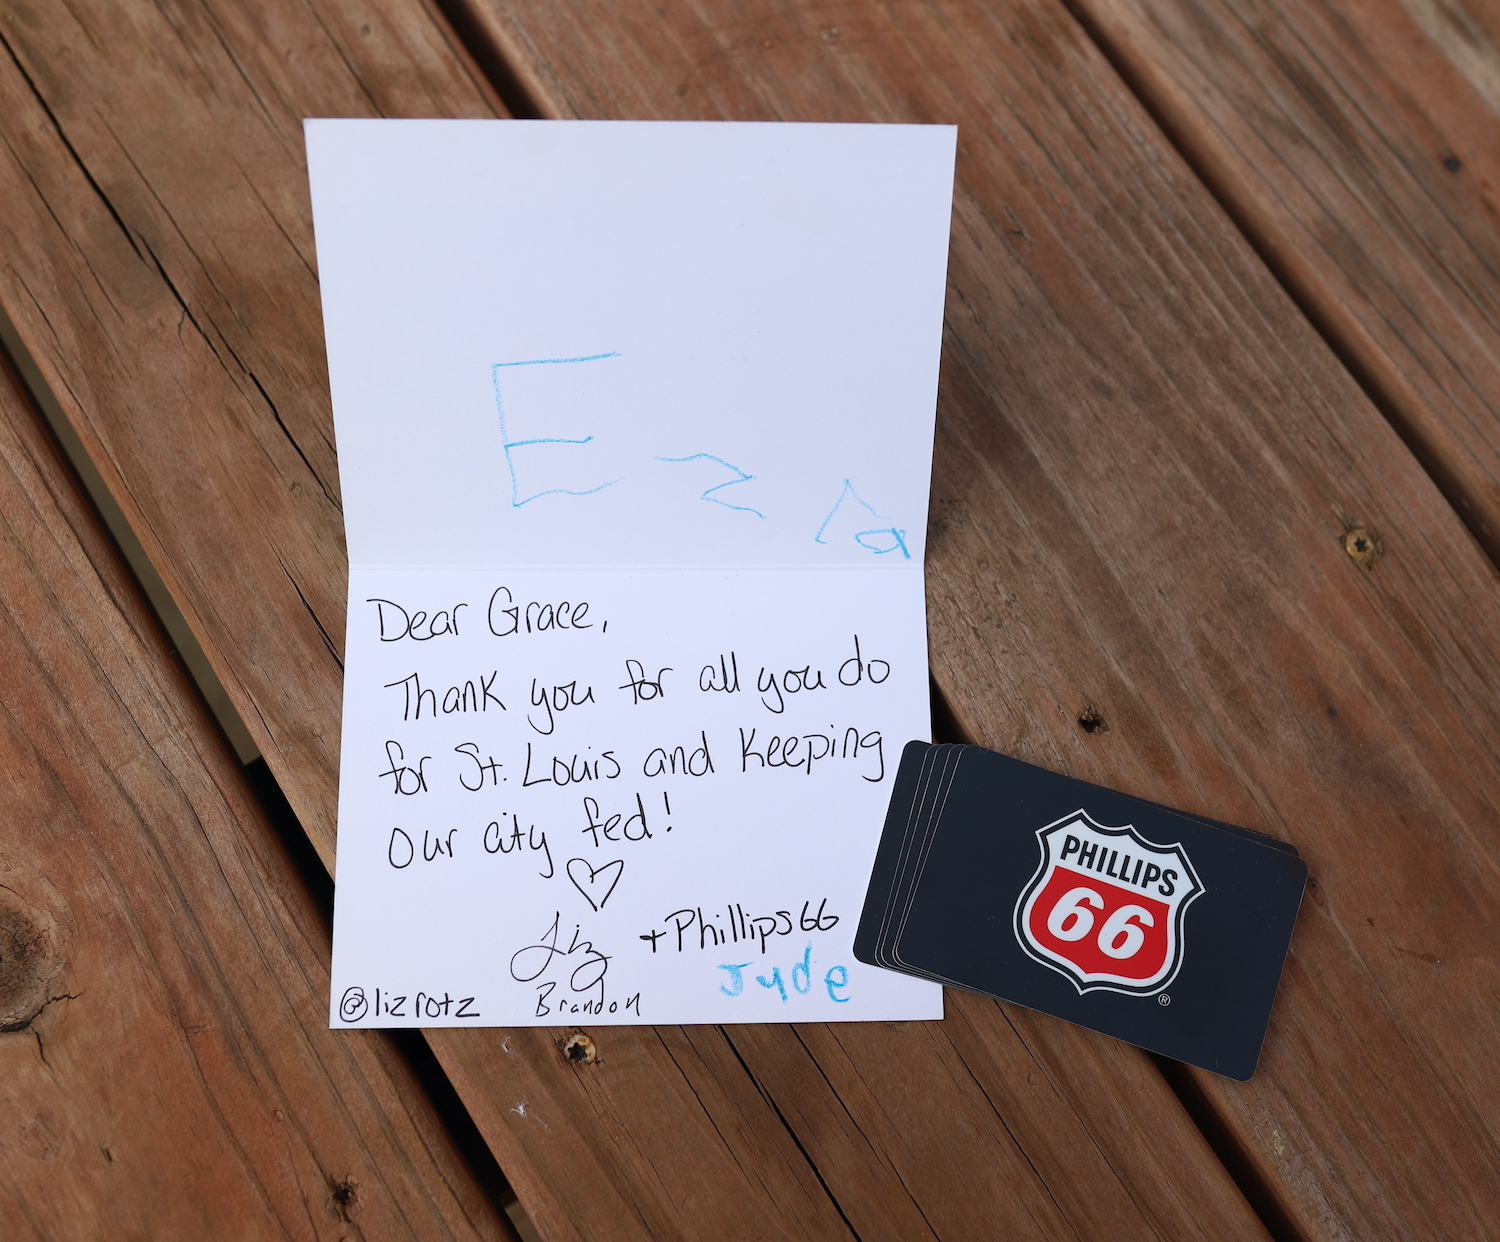 Eating Out Adventure in St. Louis with Phillips 66 #phillips66 #livetothefull